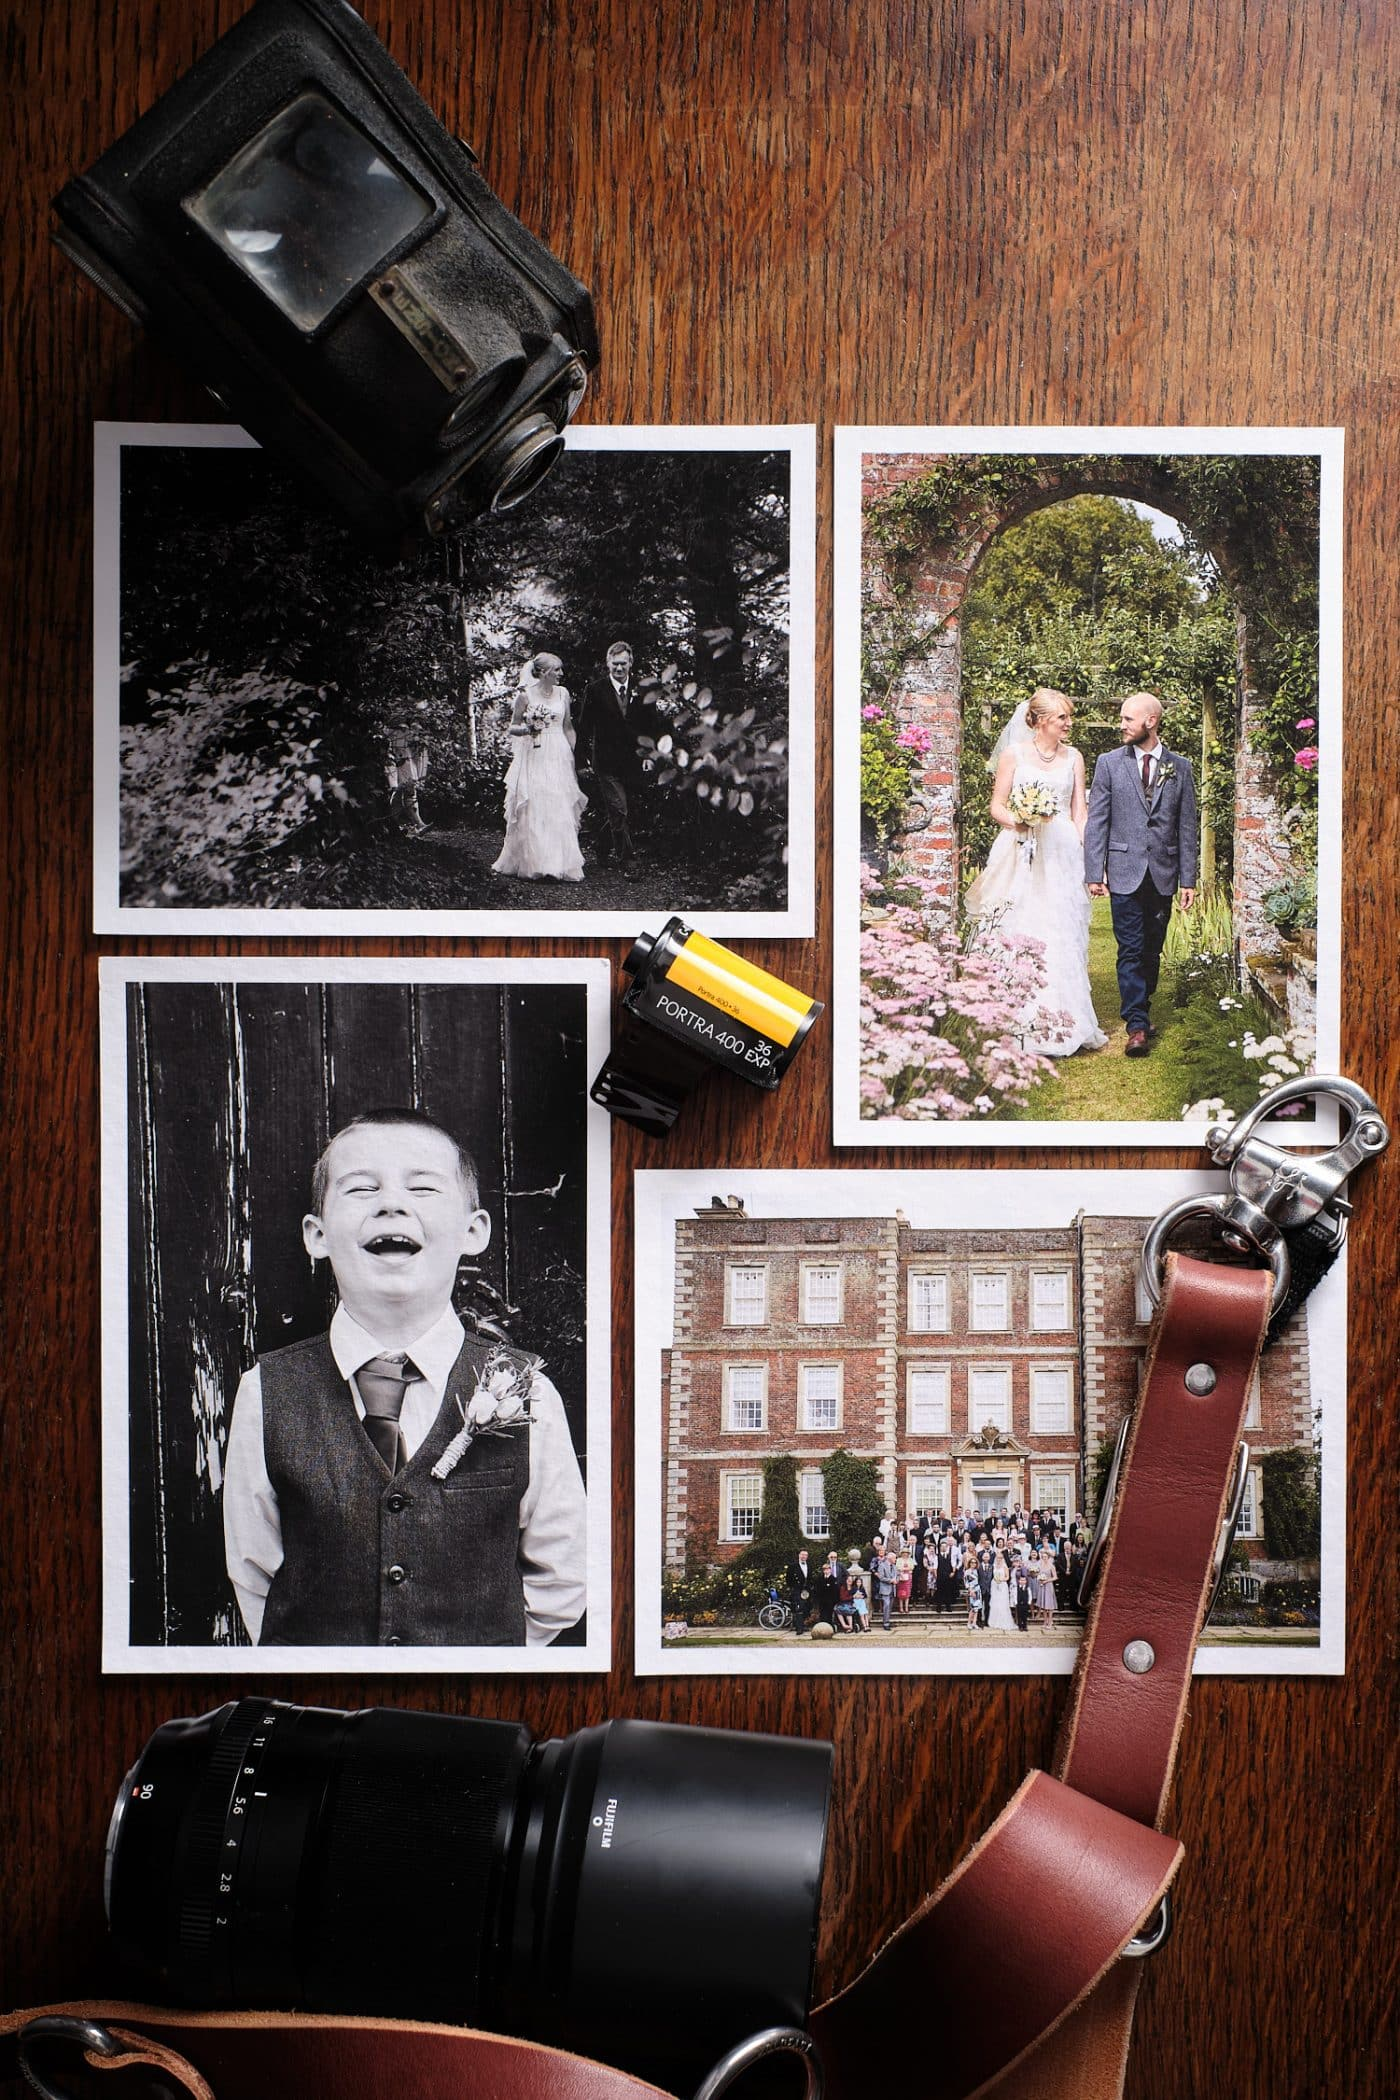 A flat lay image of giclèe prints with camera equipment